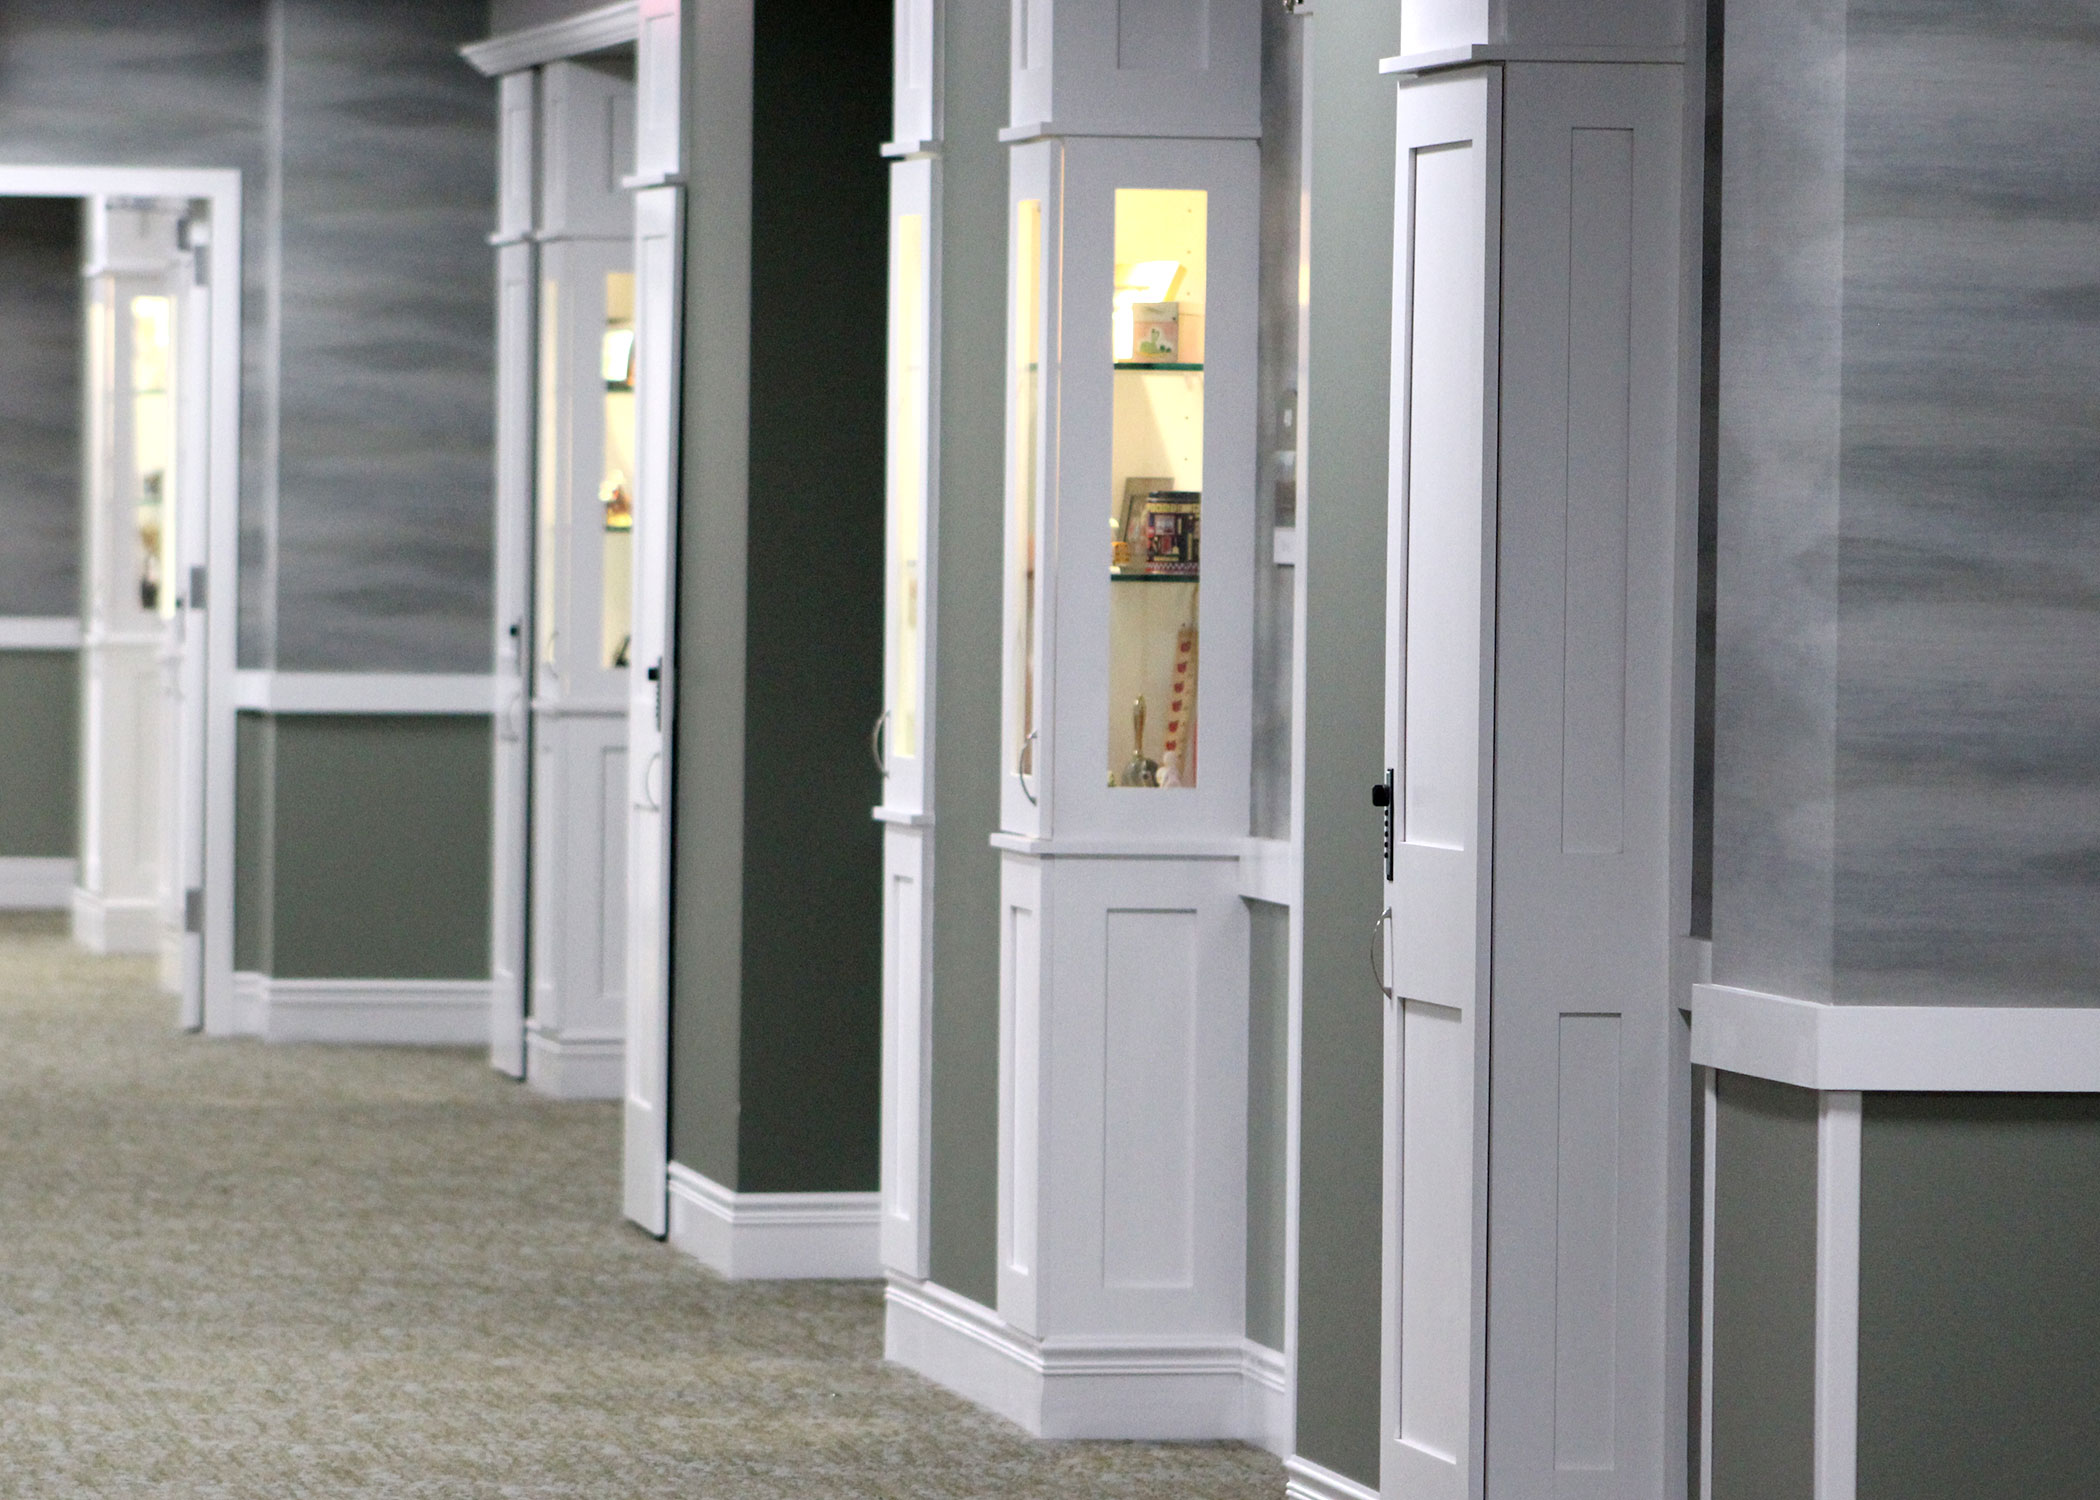 Hallway in Enhanced Assisted Living and Memory Care with a Personalize Entrance Hutch